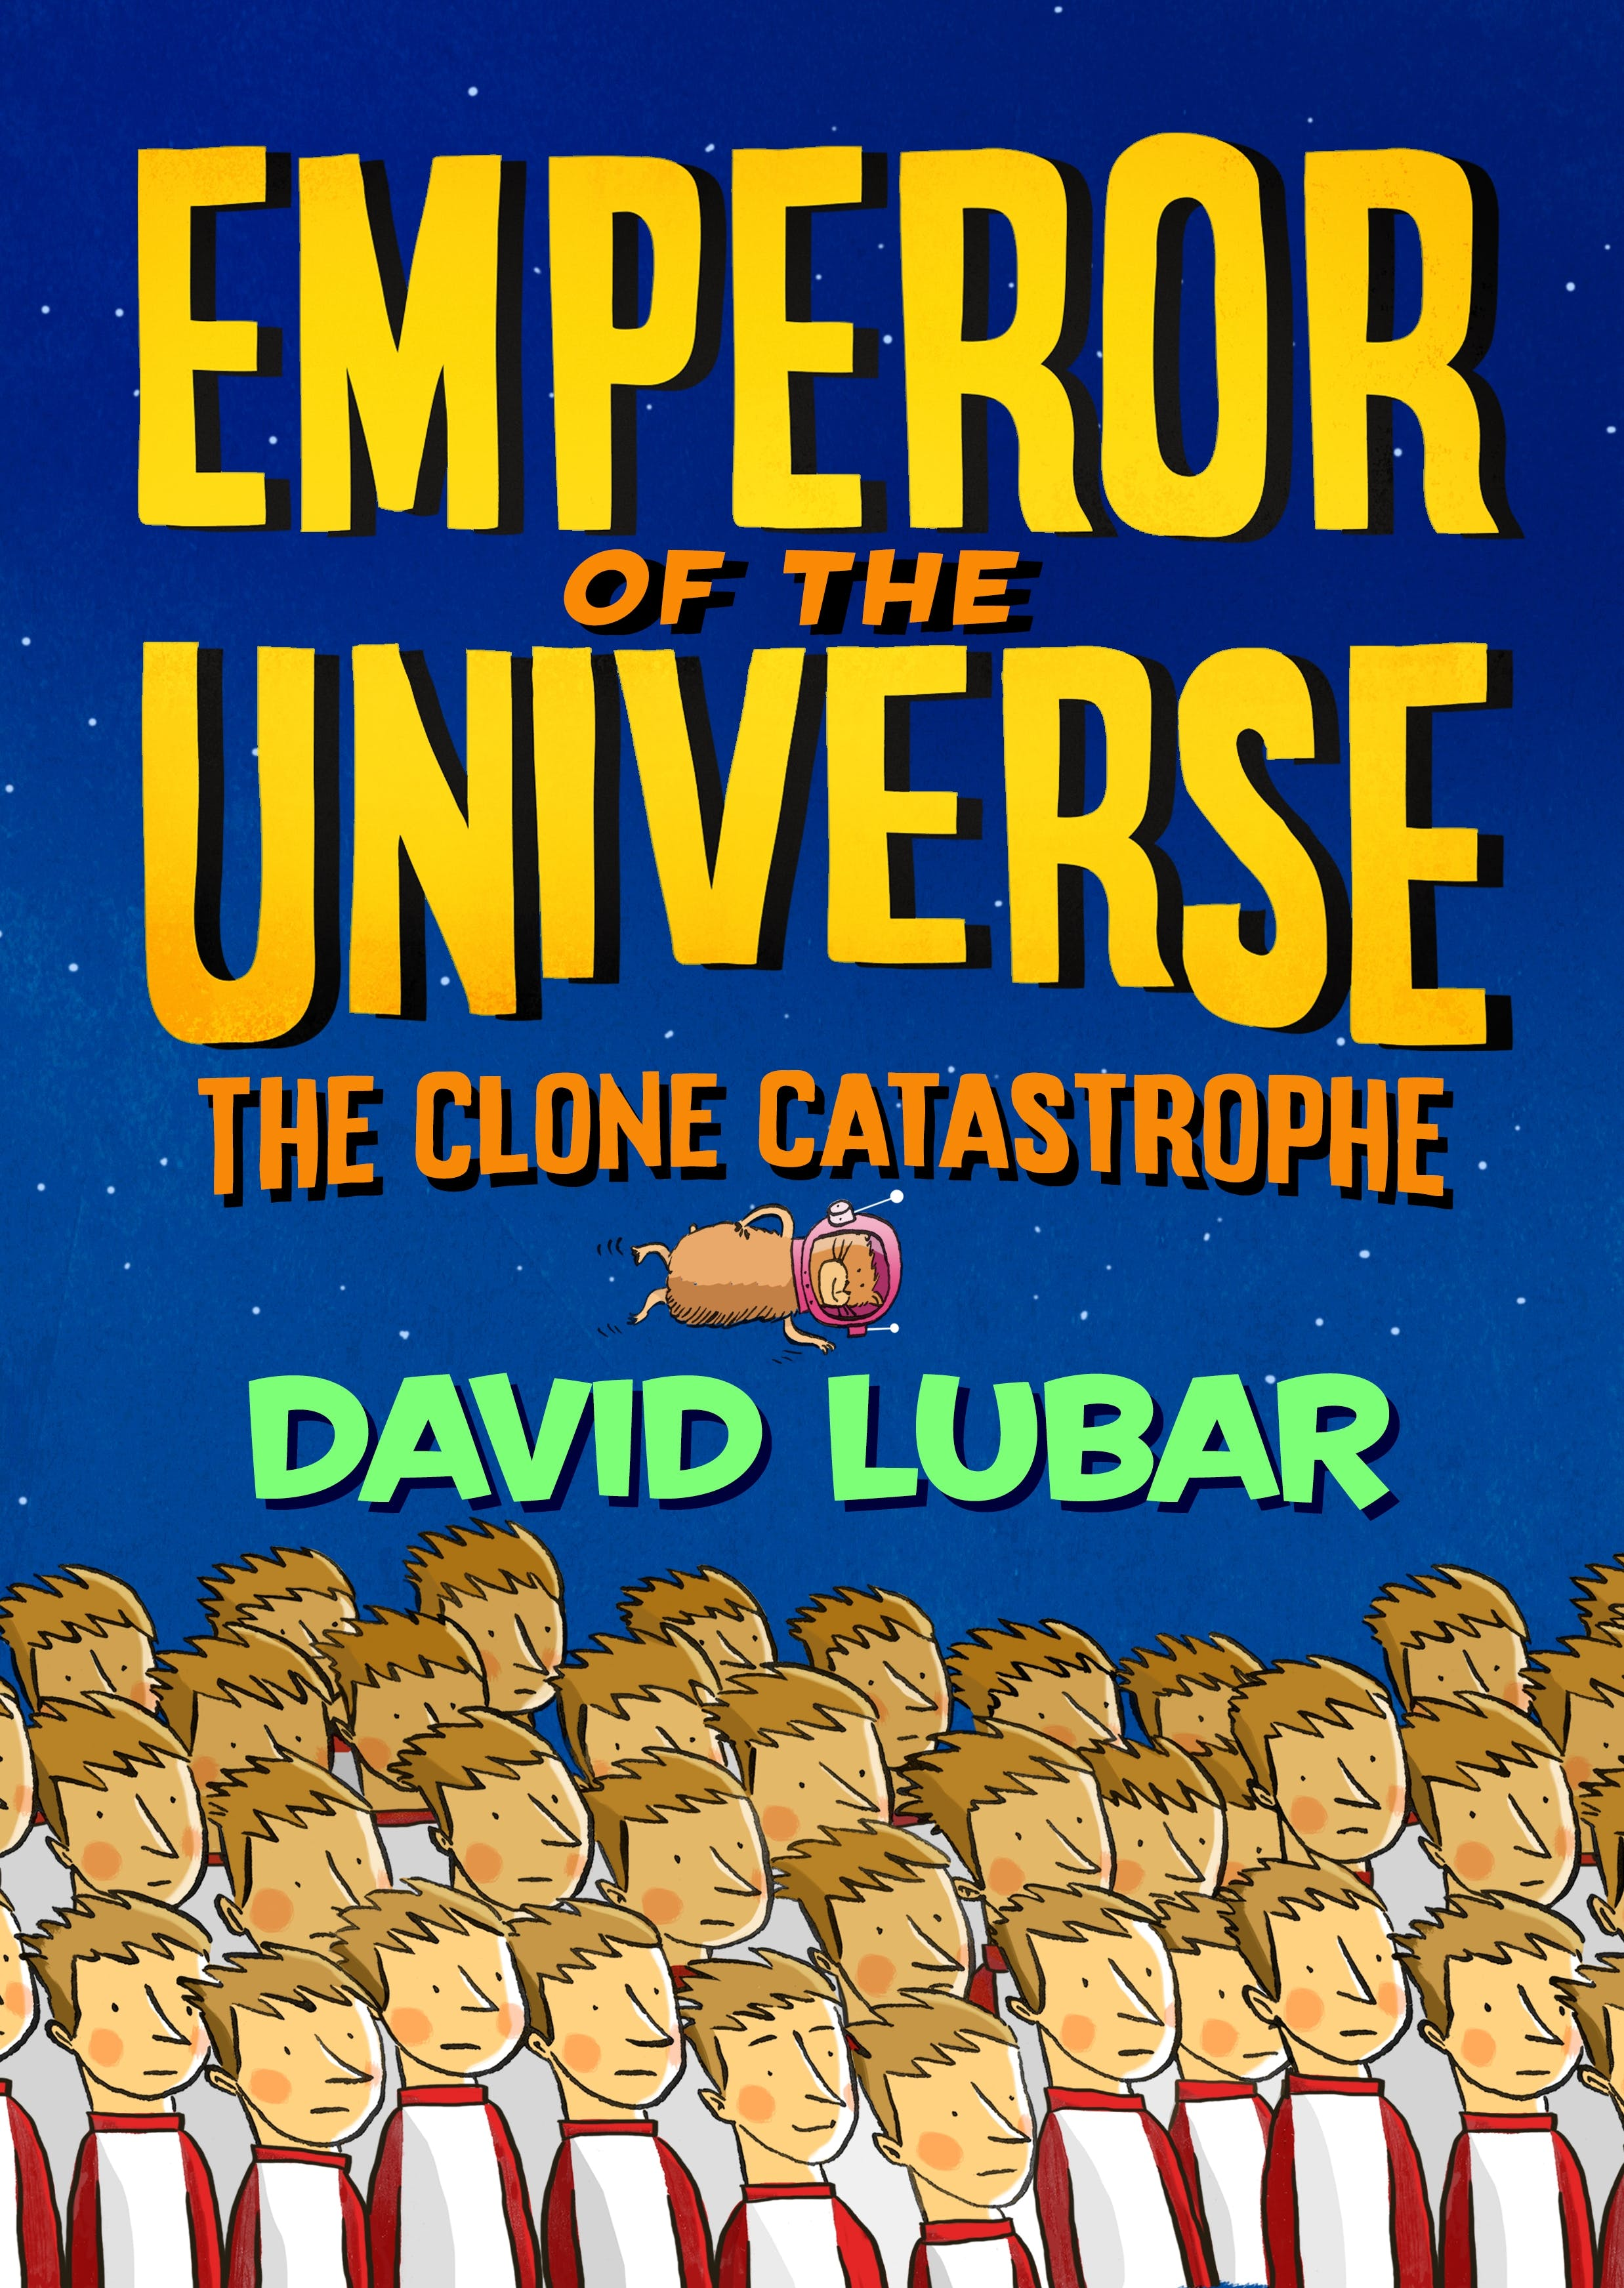 Image of The Clone Catastrophe: Emperor of the Universe